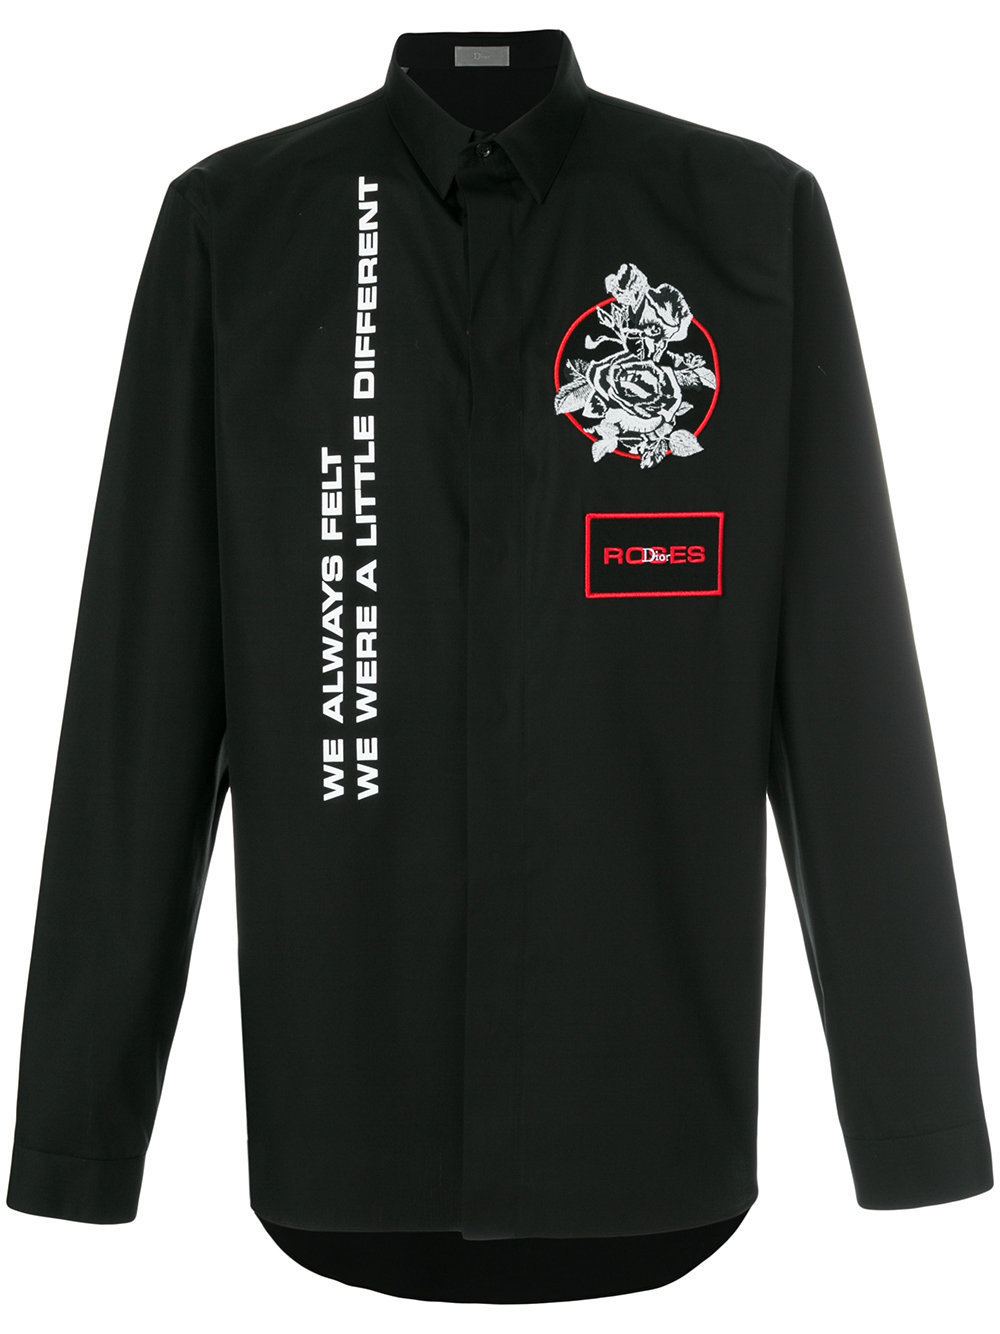 ★18SS★ DIOR HOMME ローズアップリケ ブラックボタンシャツ